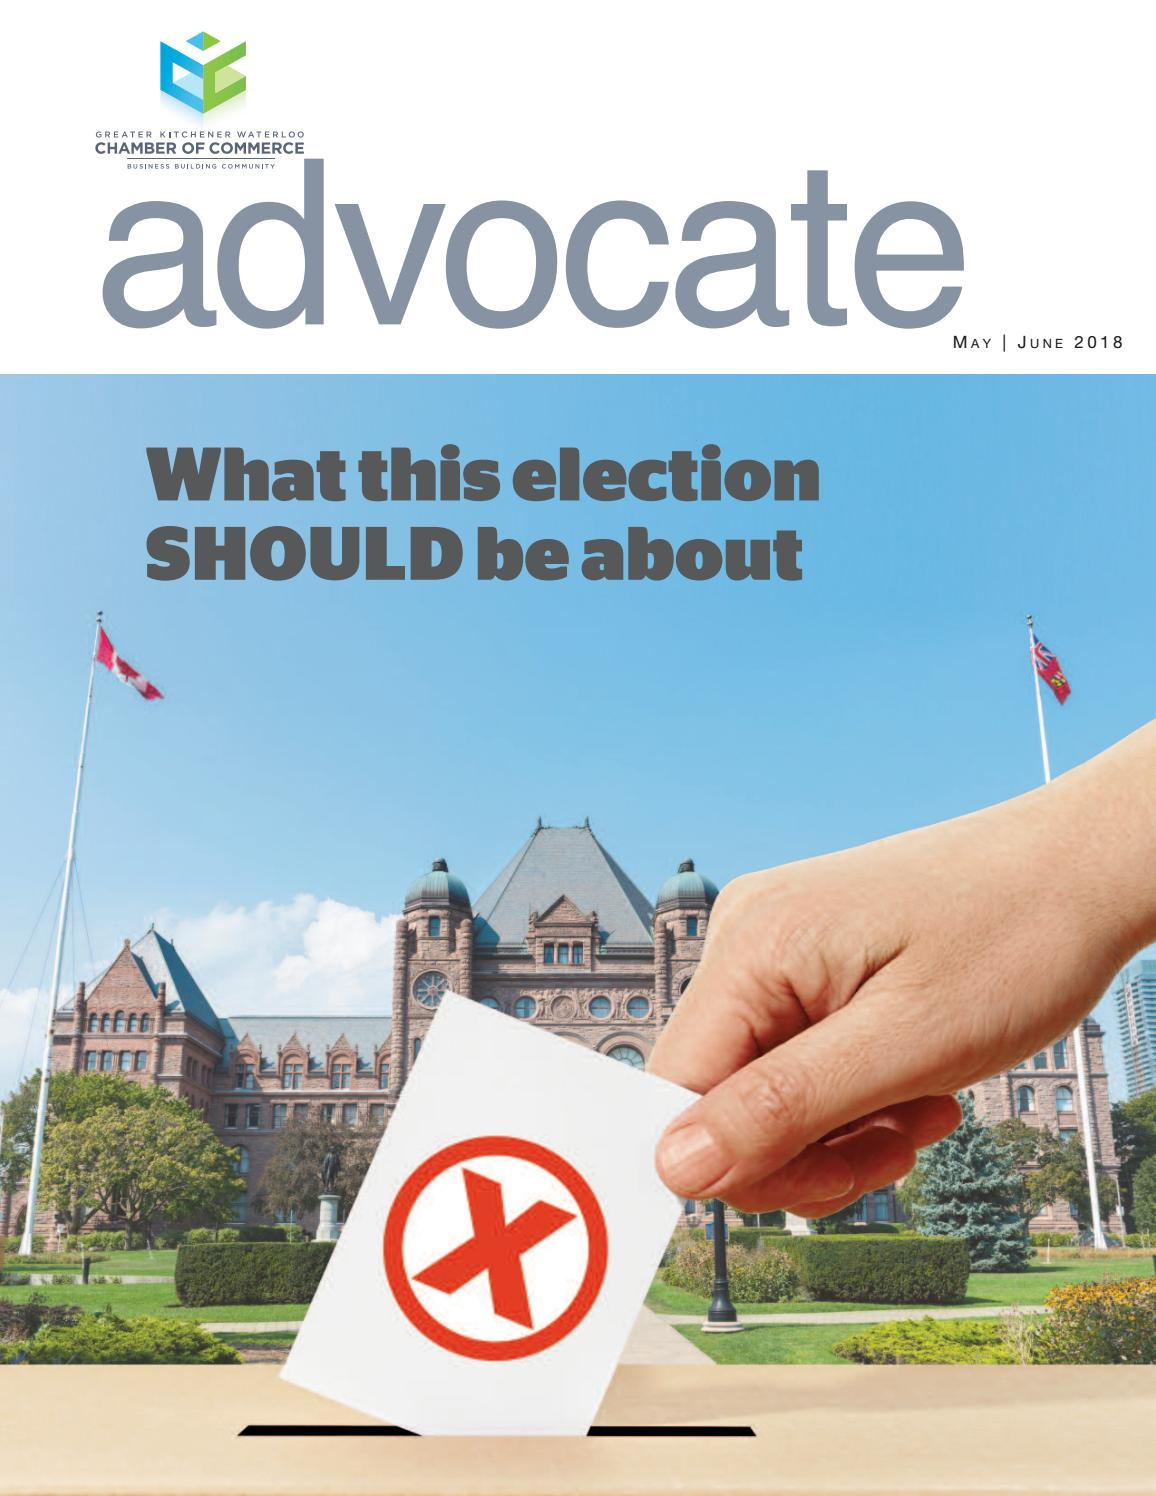 May/June 2018 Advocate by Natalie Hemmerich - issuu